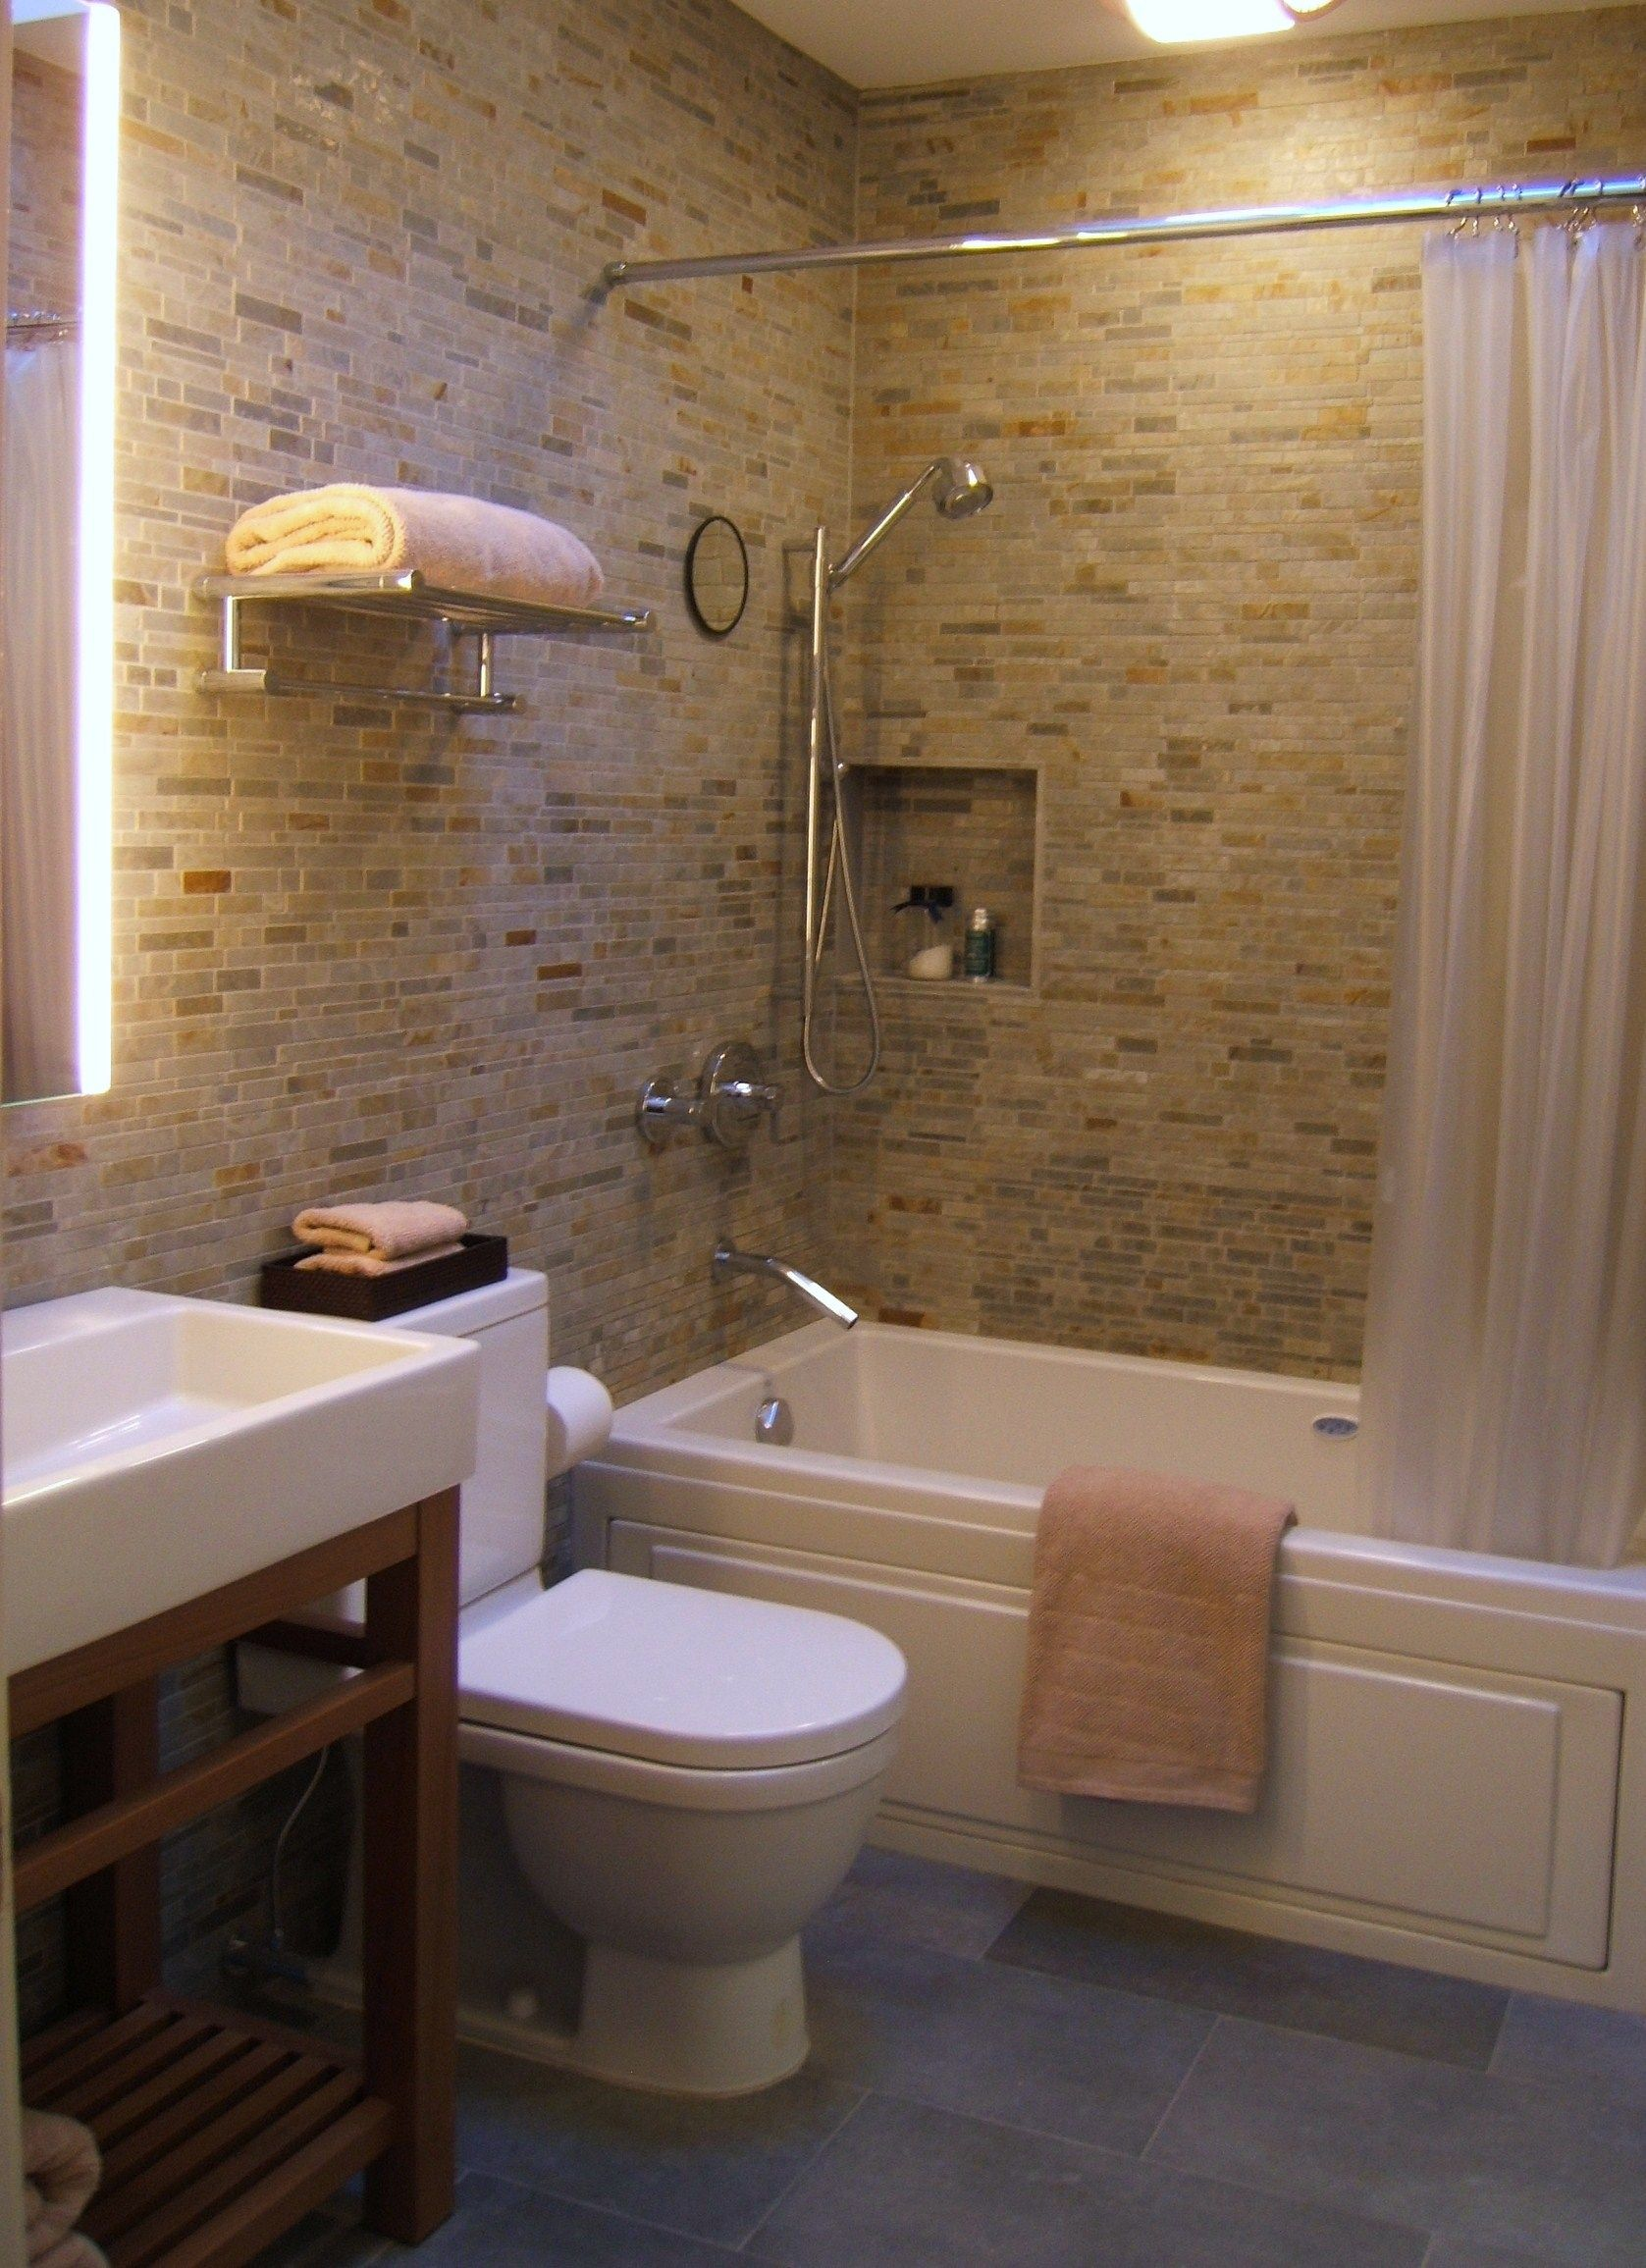 Small bathroom designs south africa small bath for Small bathroom designs images gallery